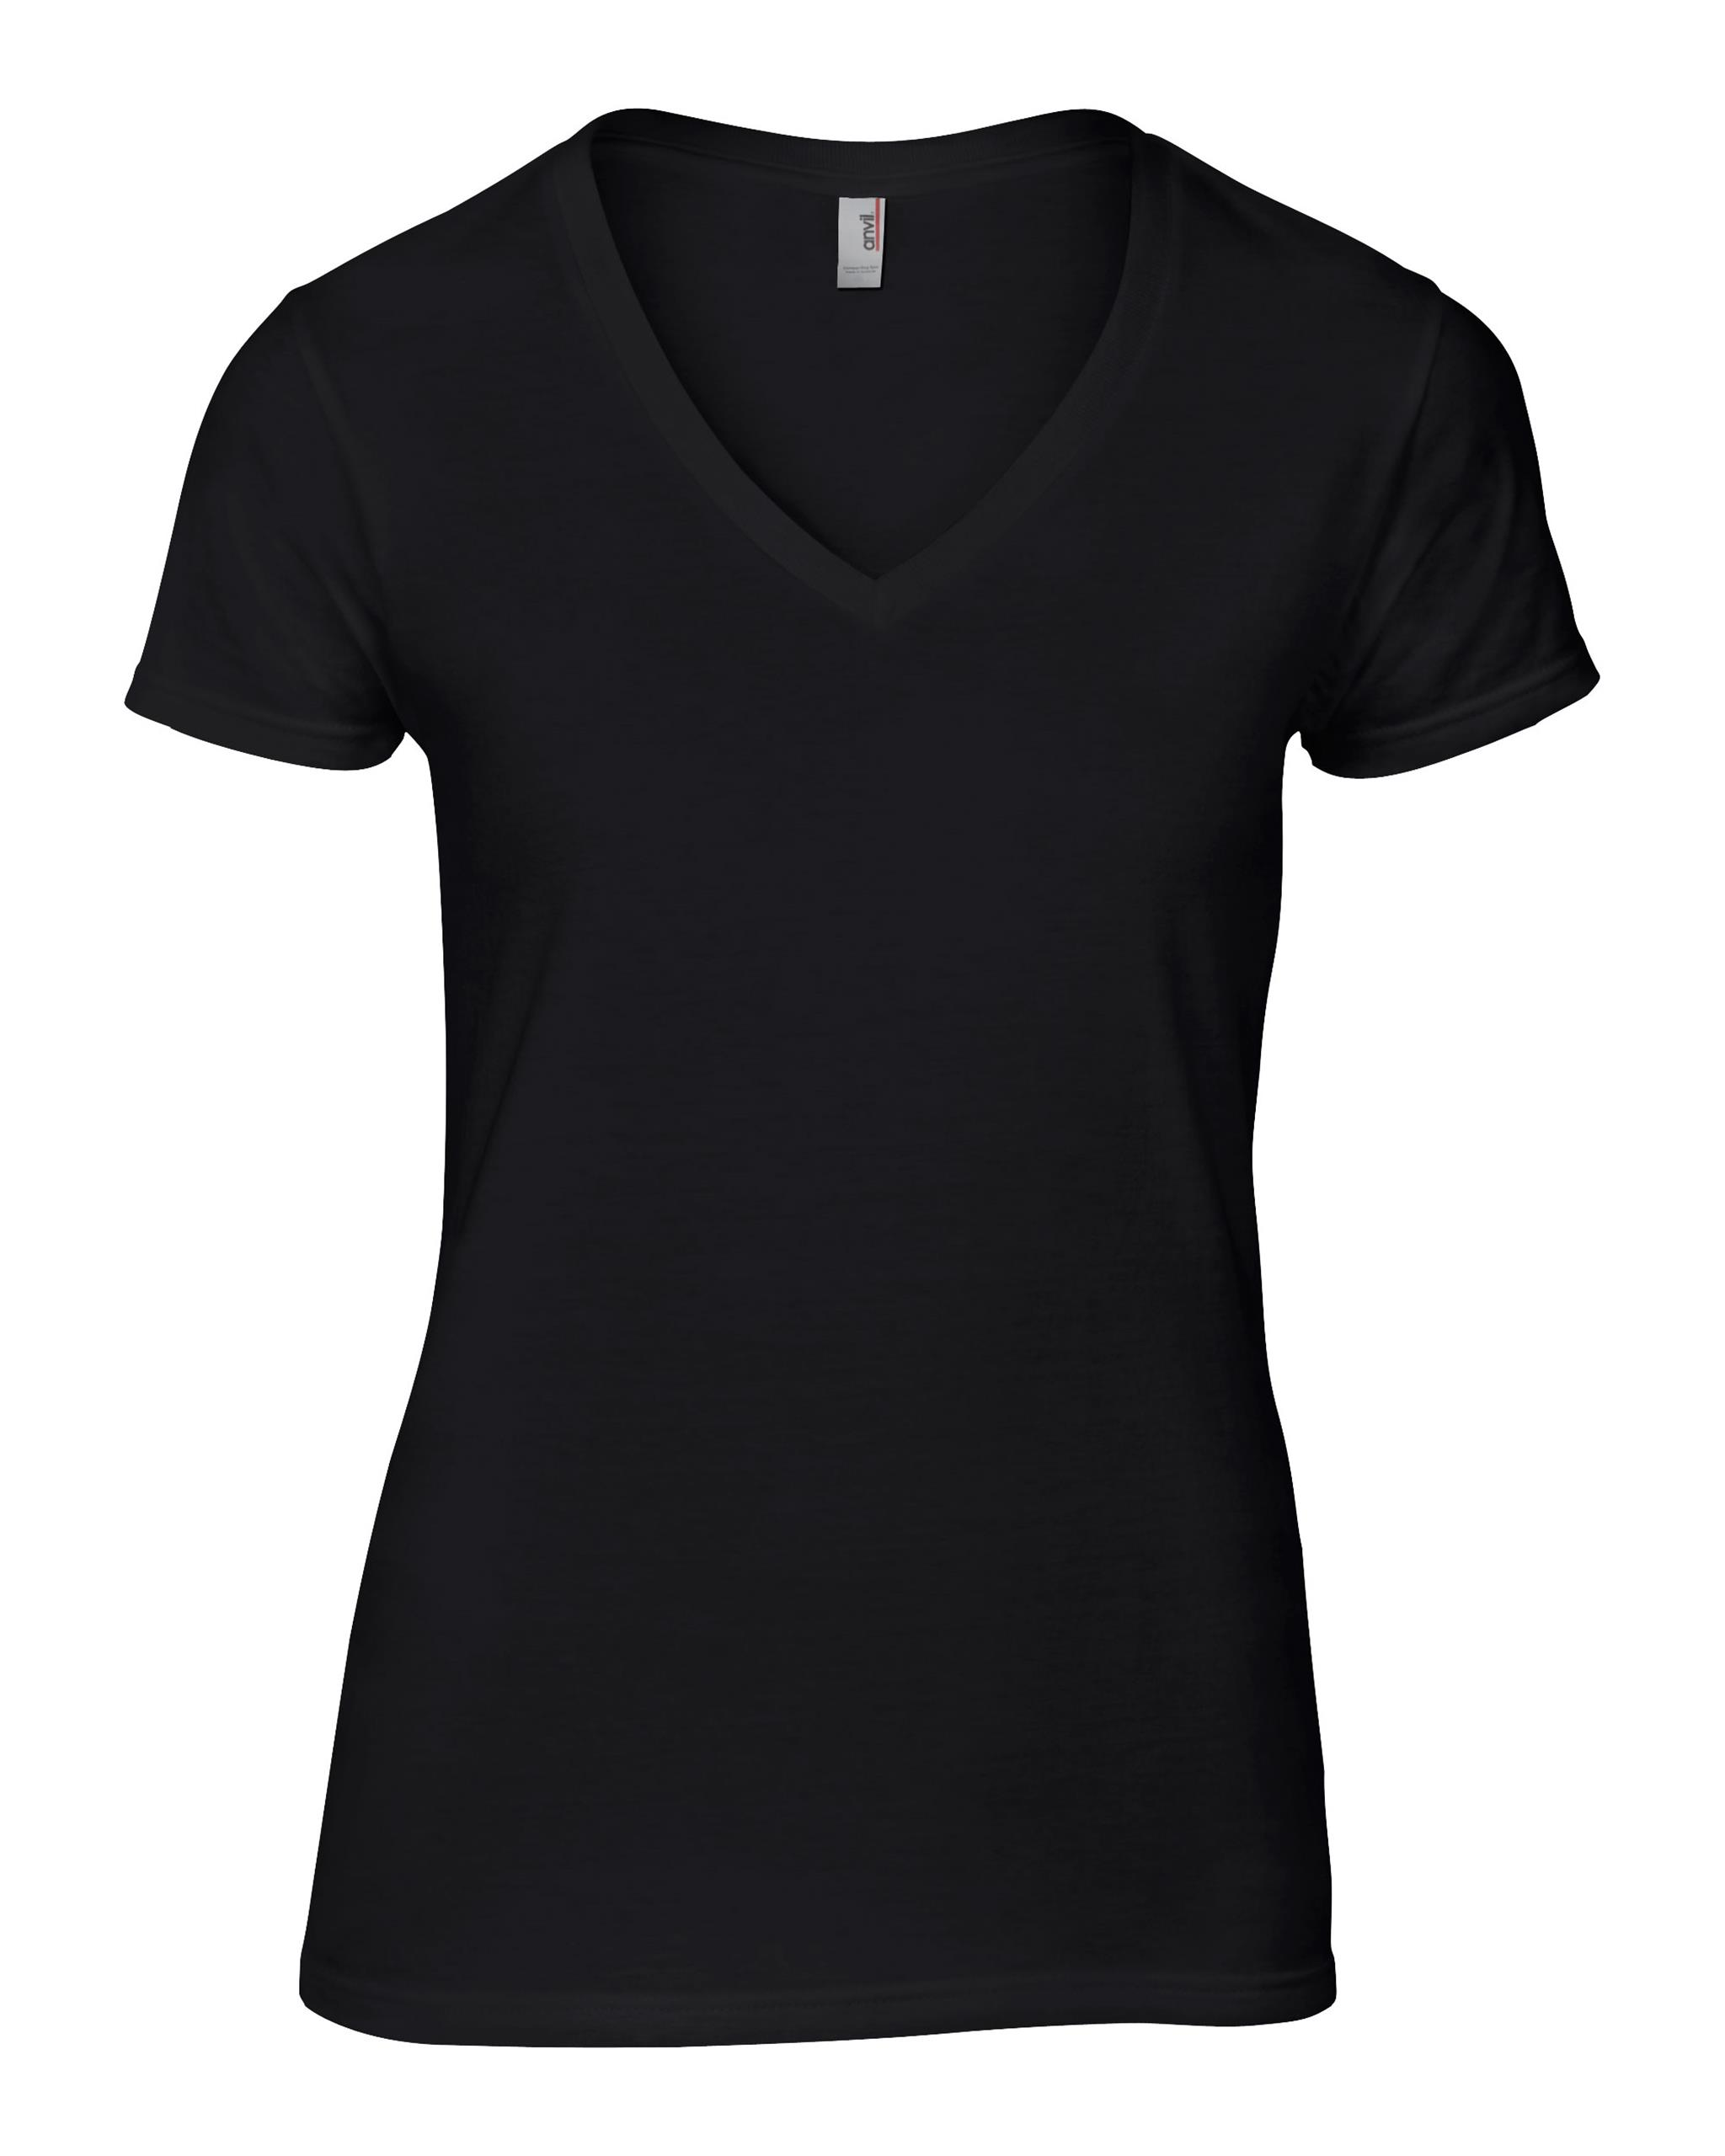 Find great deals on eBay for black v neck shirt women. Shop with confidence.